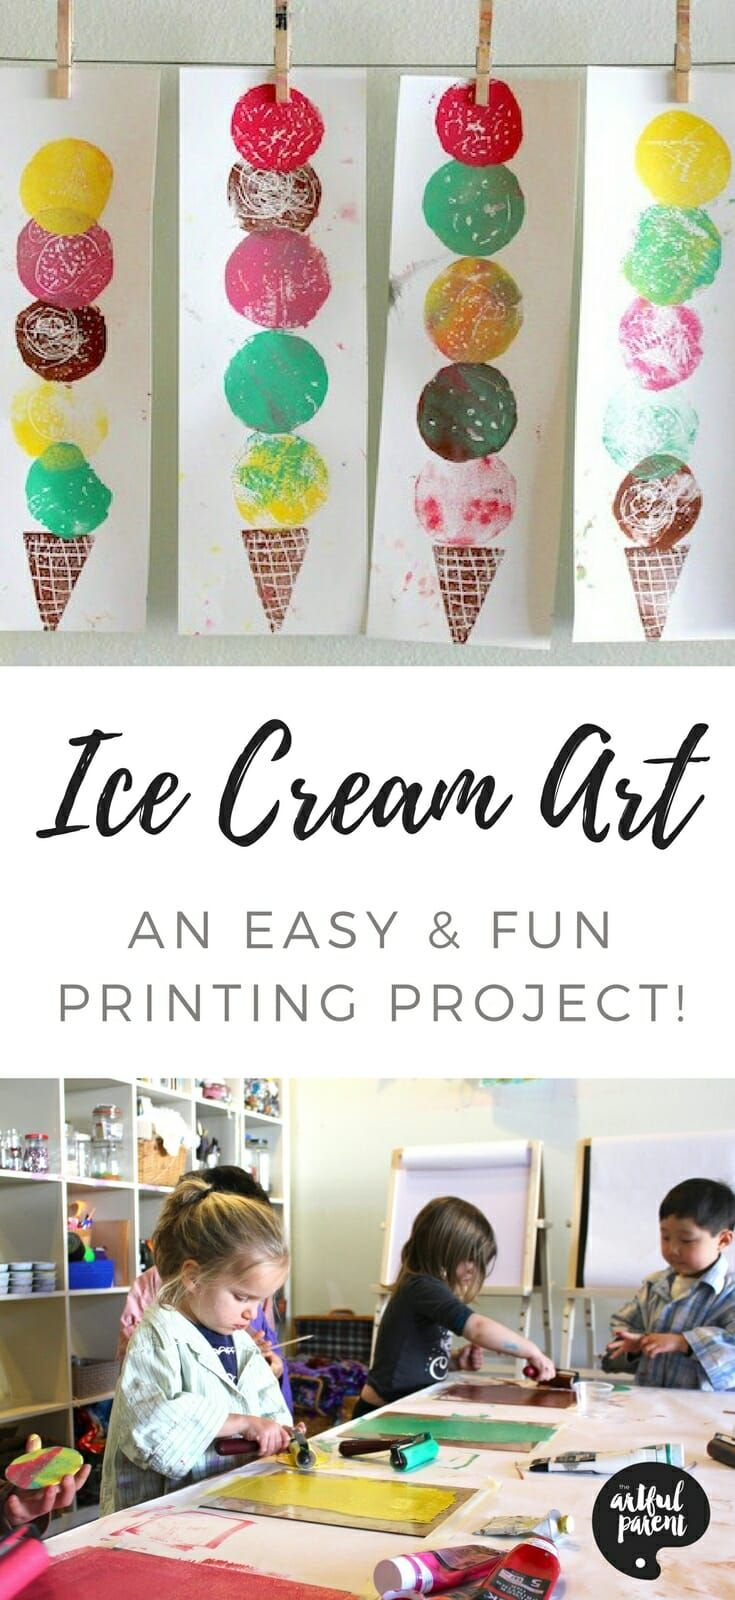 Be a painter like the girl in the book Jobs of a Preschooler with this fun ice cream art project.